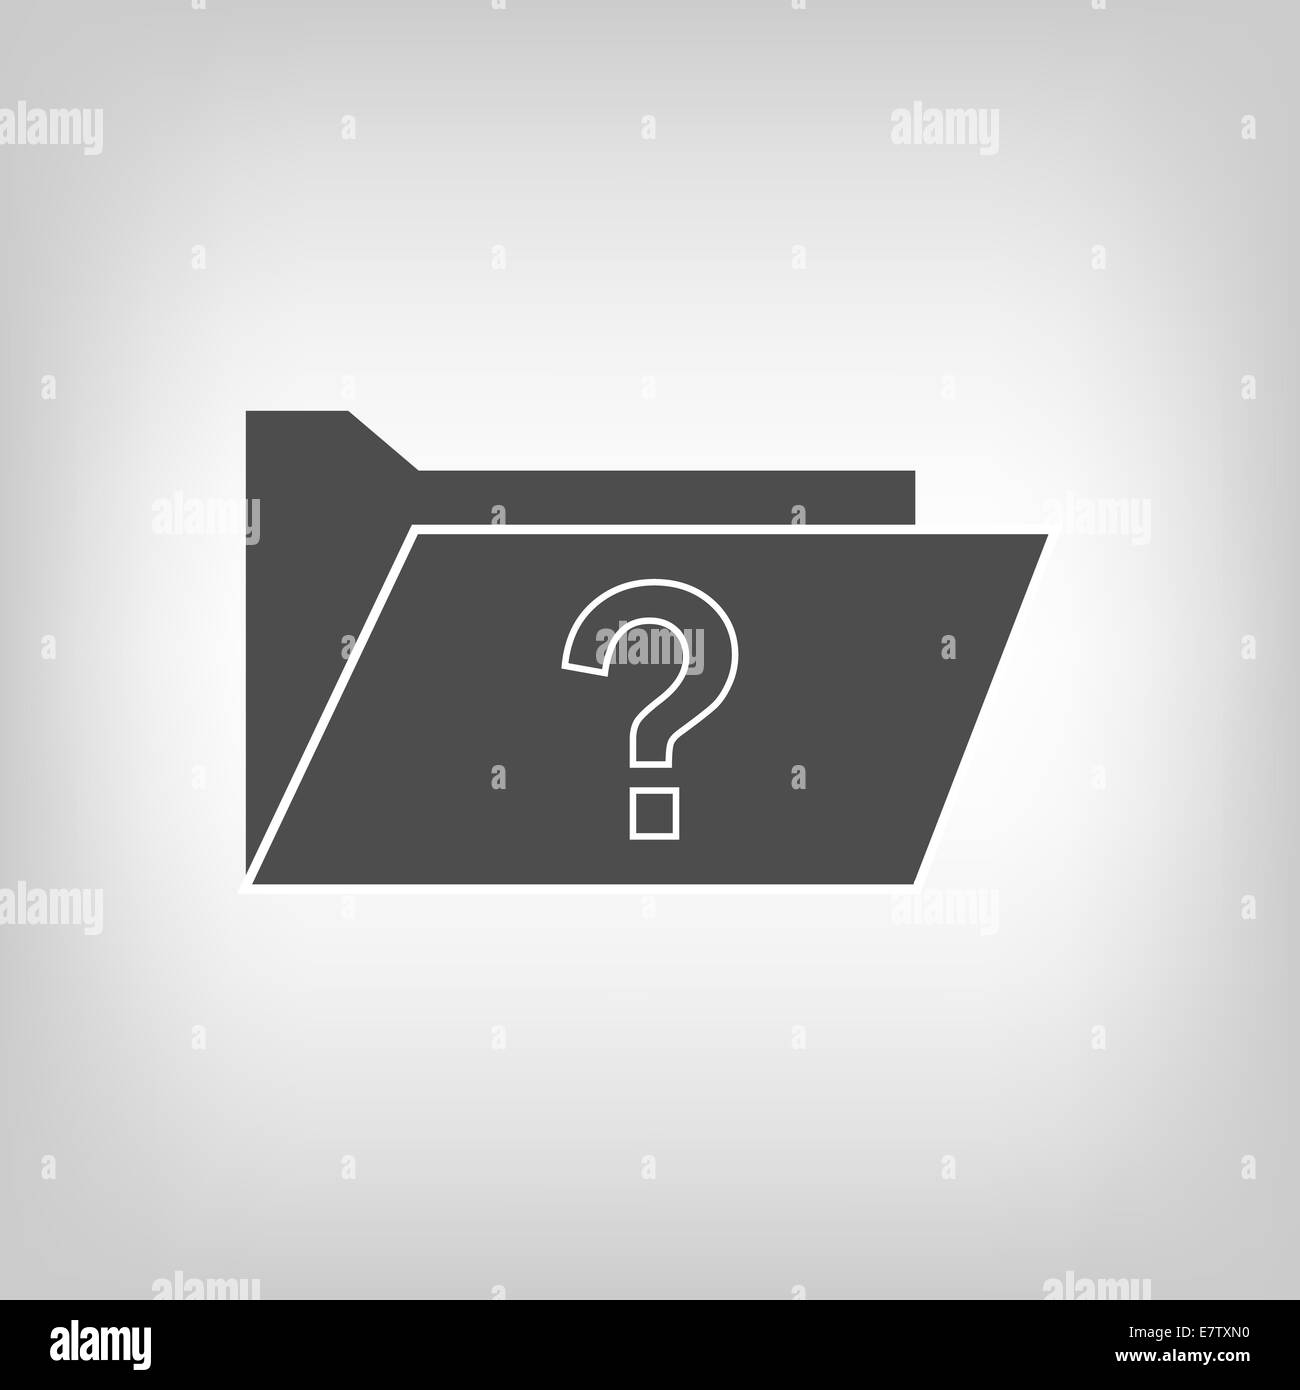 Computer folder with quiestion mark - Stock Image